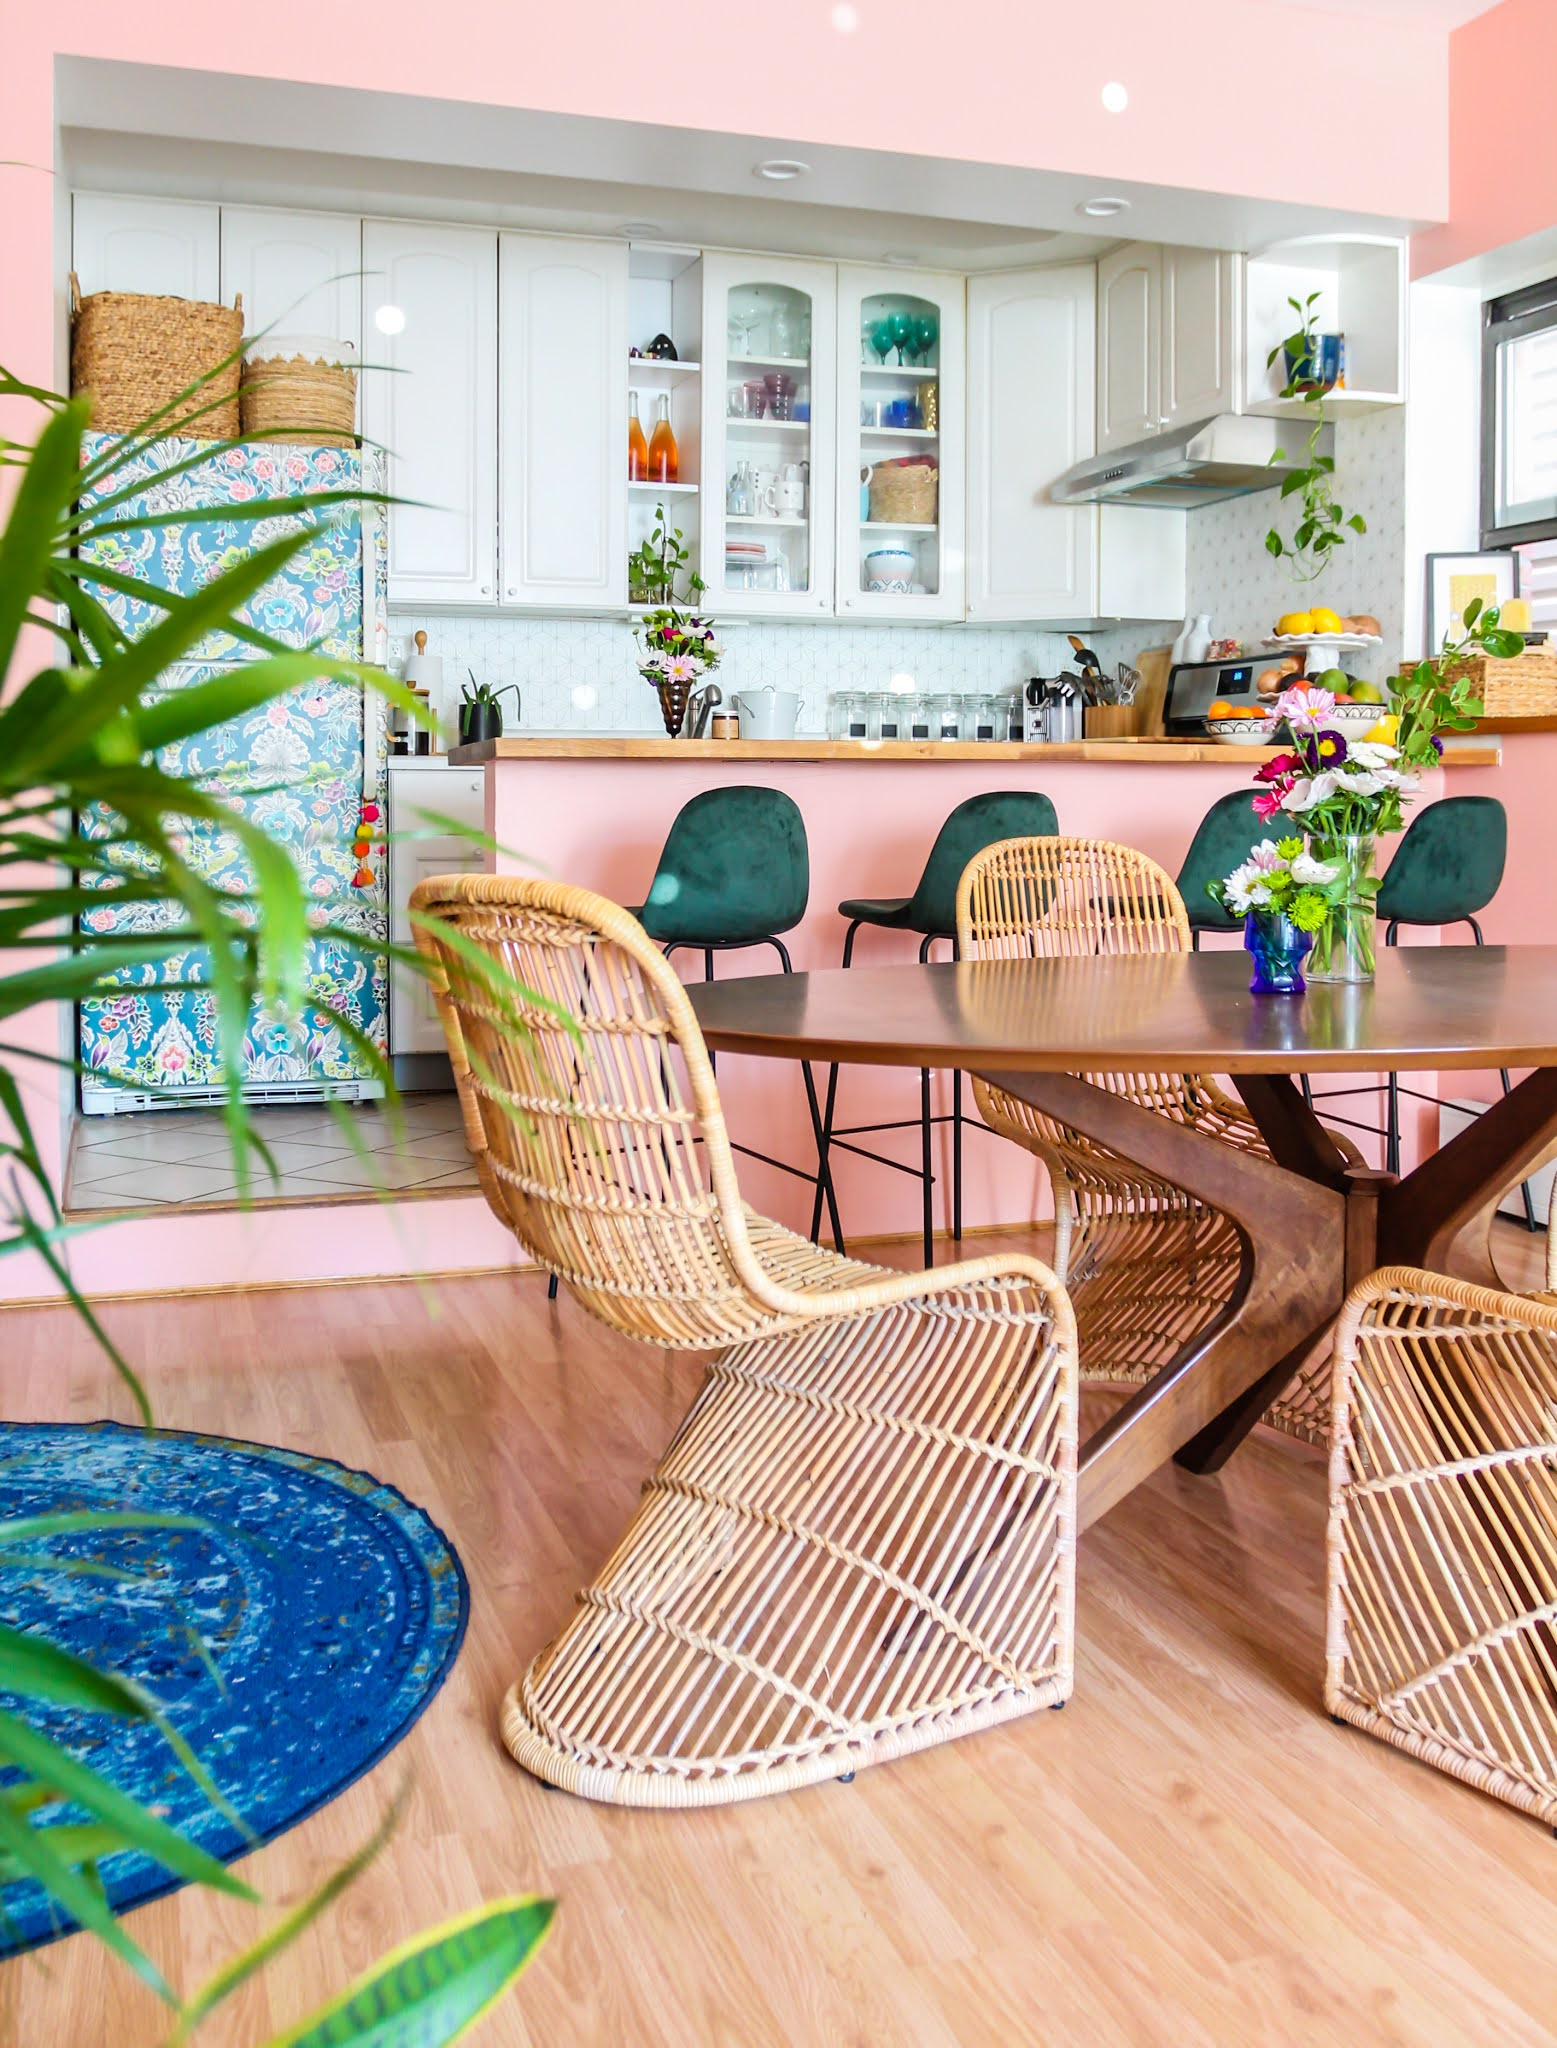 pink and green decor // green barstools // pink kitchen // diy wallpaper fridge // pink and green kitchen // colorful homes // Megan Zietz  Apartment // TfDiaries // pink and green room // pink and green Inspo // barstool inspo // velvet barstools // in mod Sigfred barstool // Green Velvet Mid Century Barstools